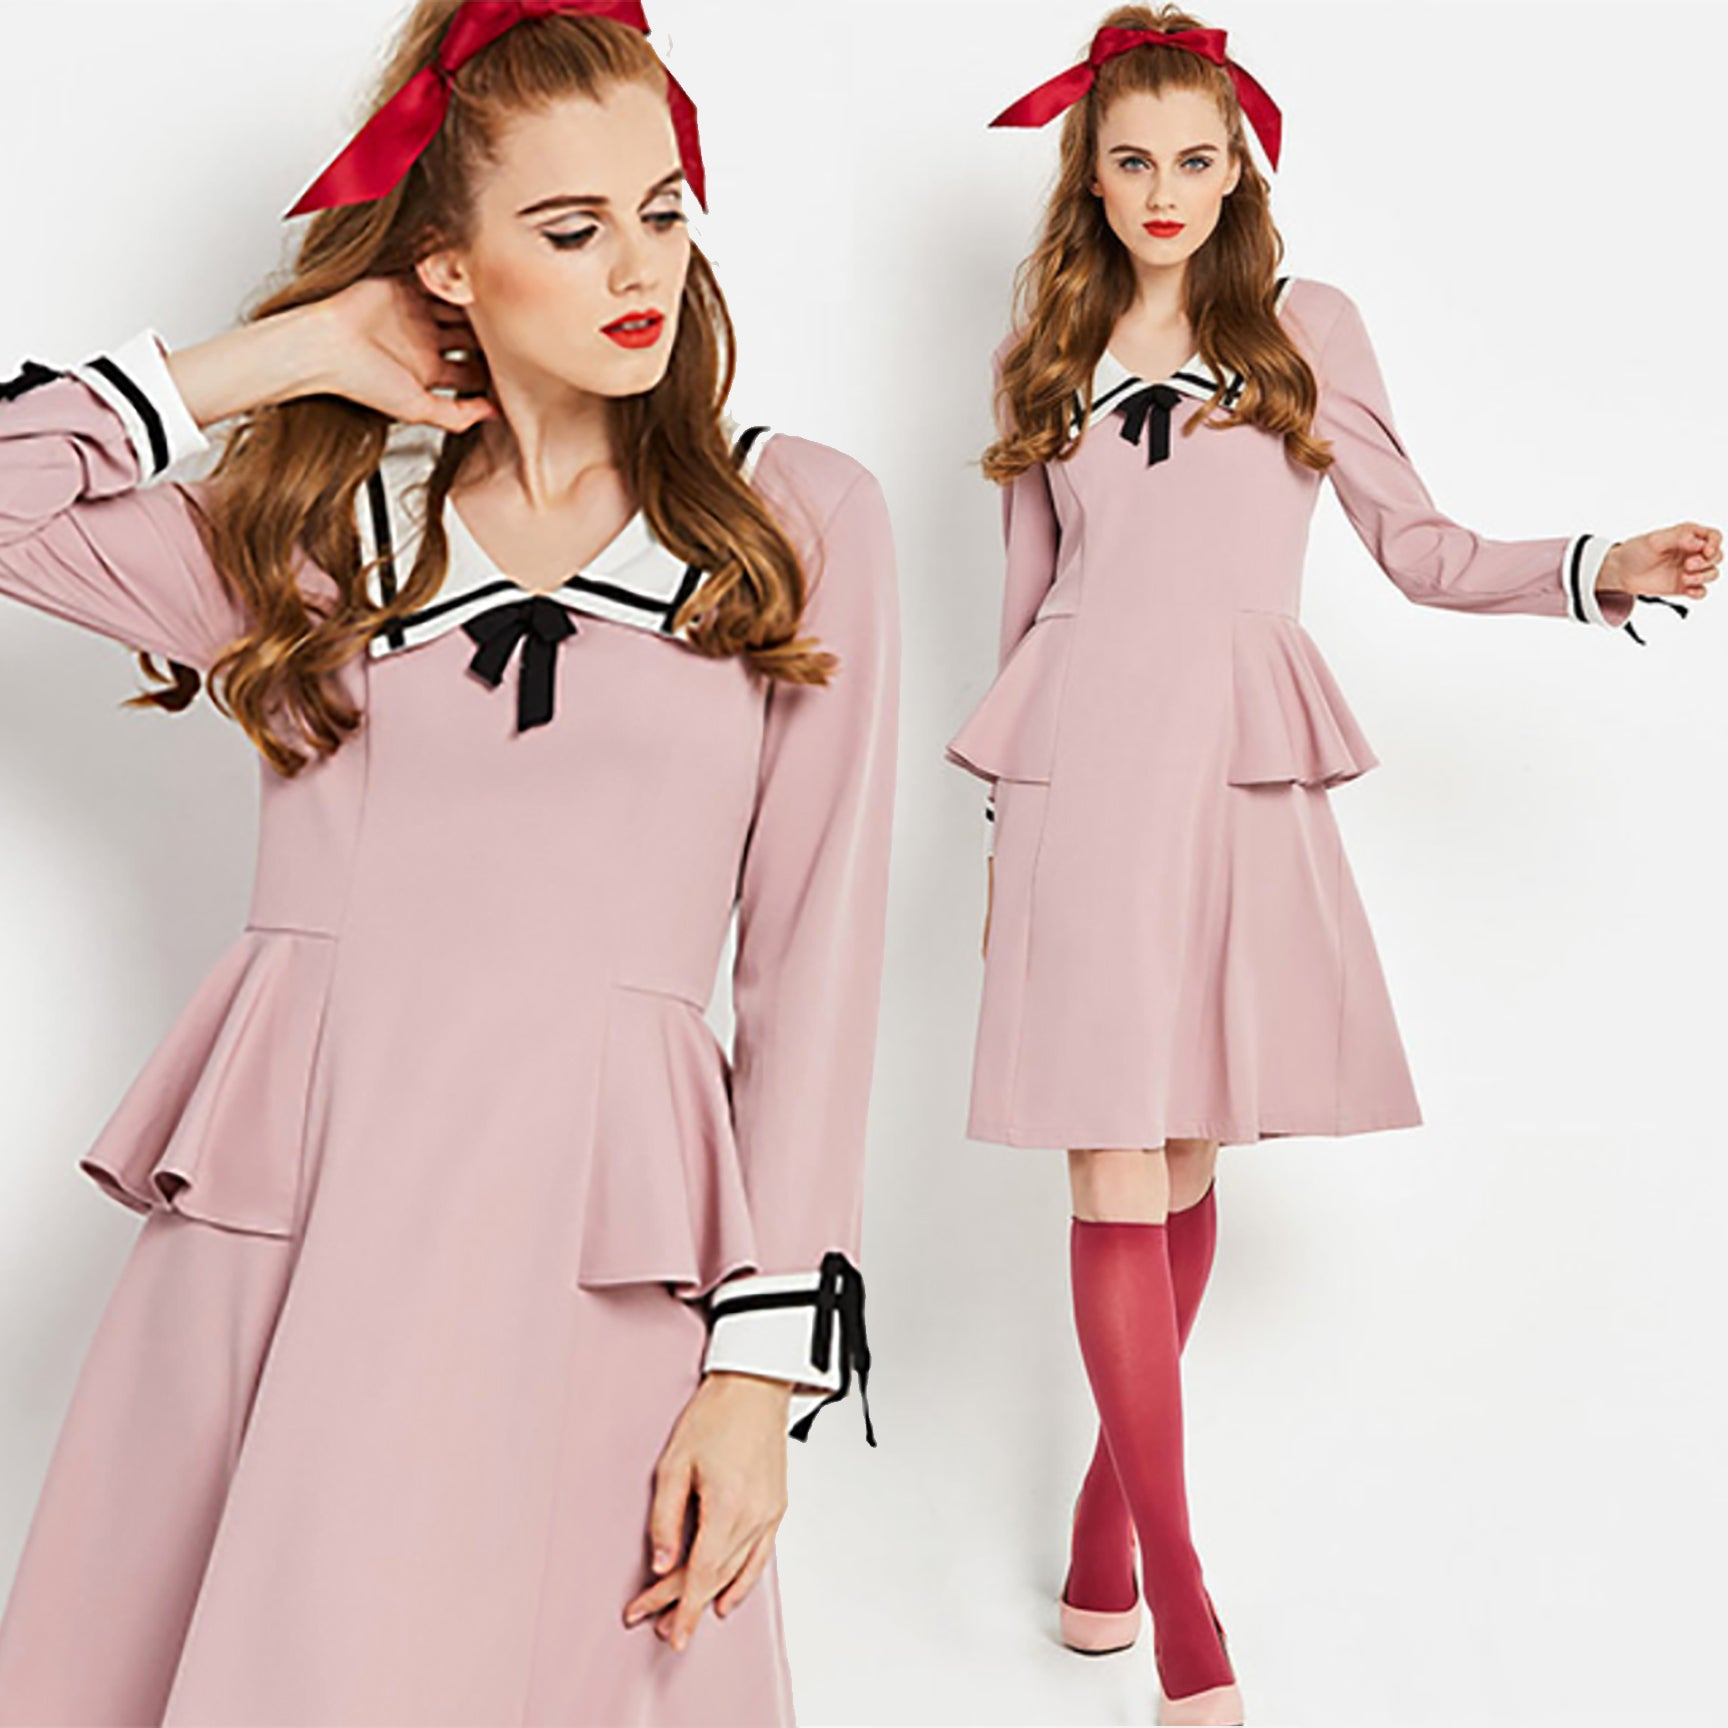 Pastel Pink Dress with Peplum Detail 1960s 1950s mod